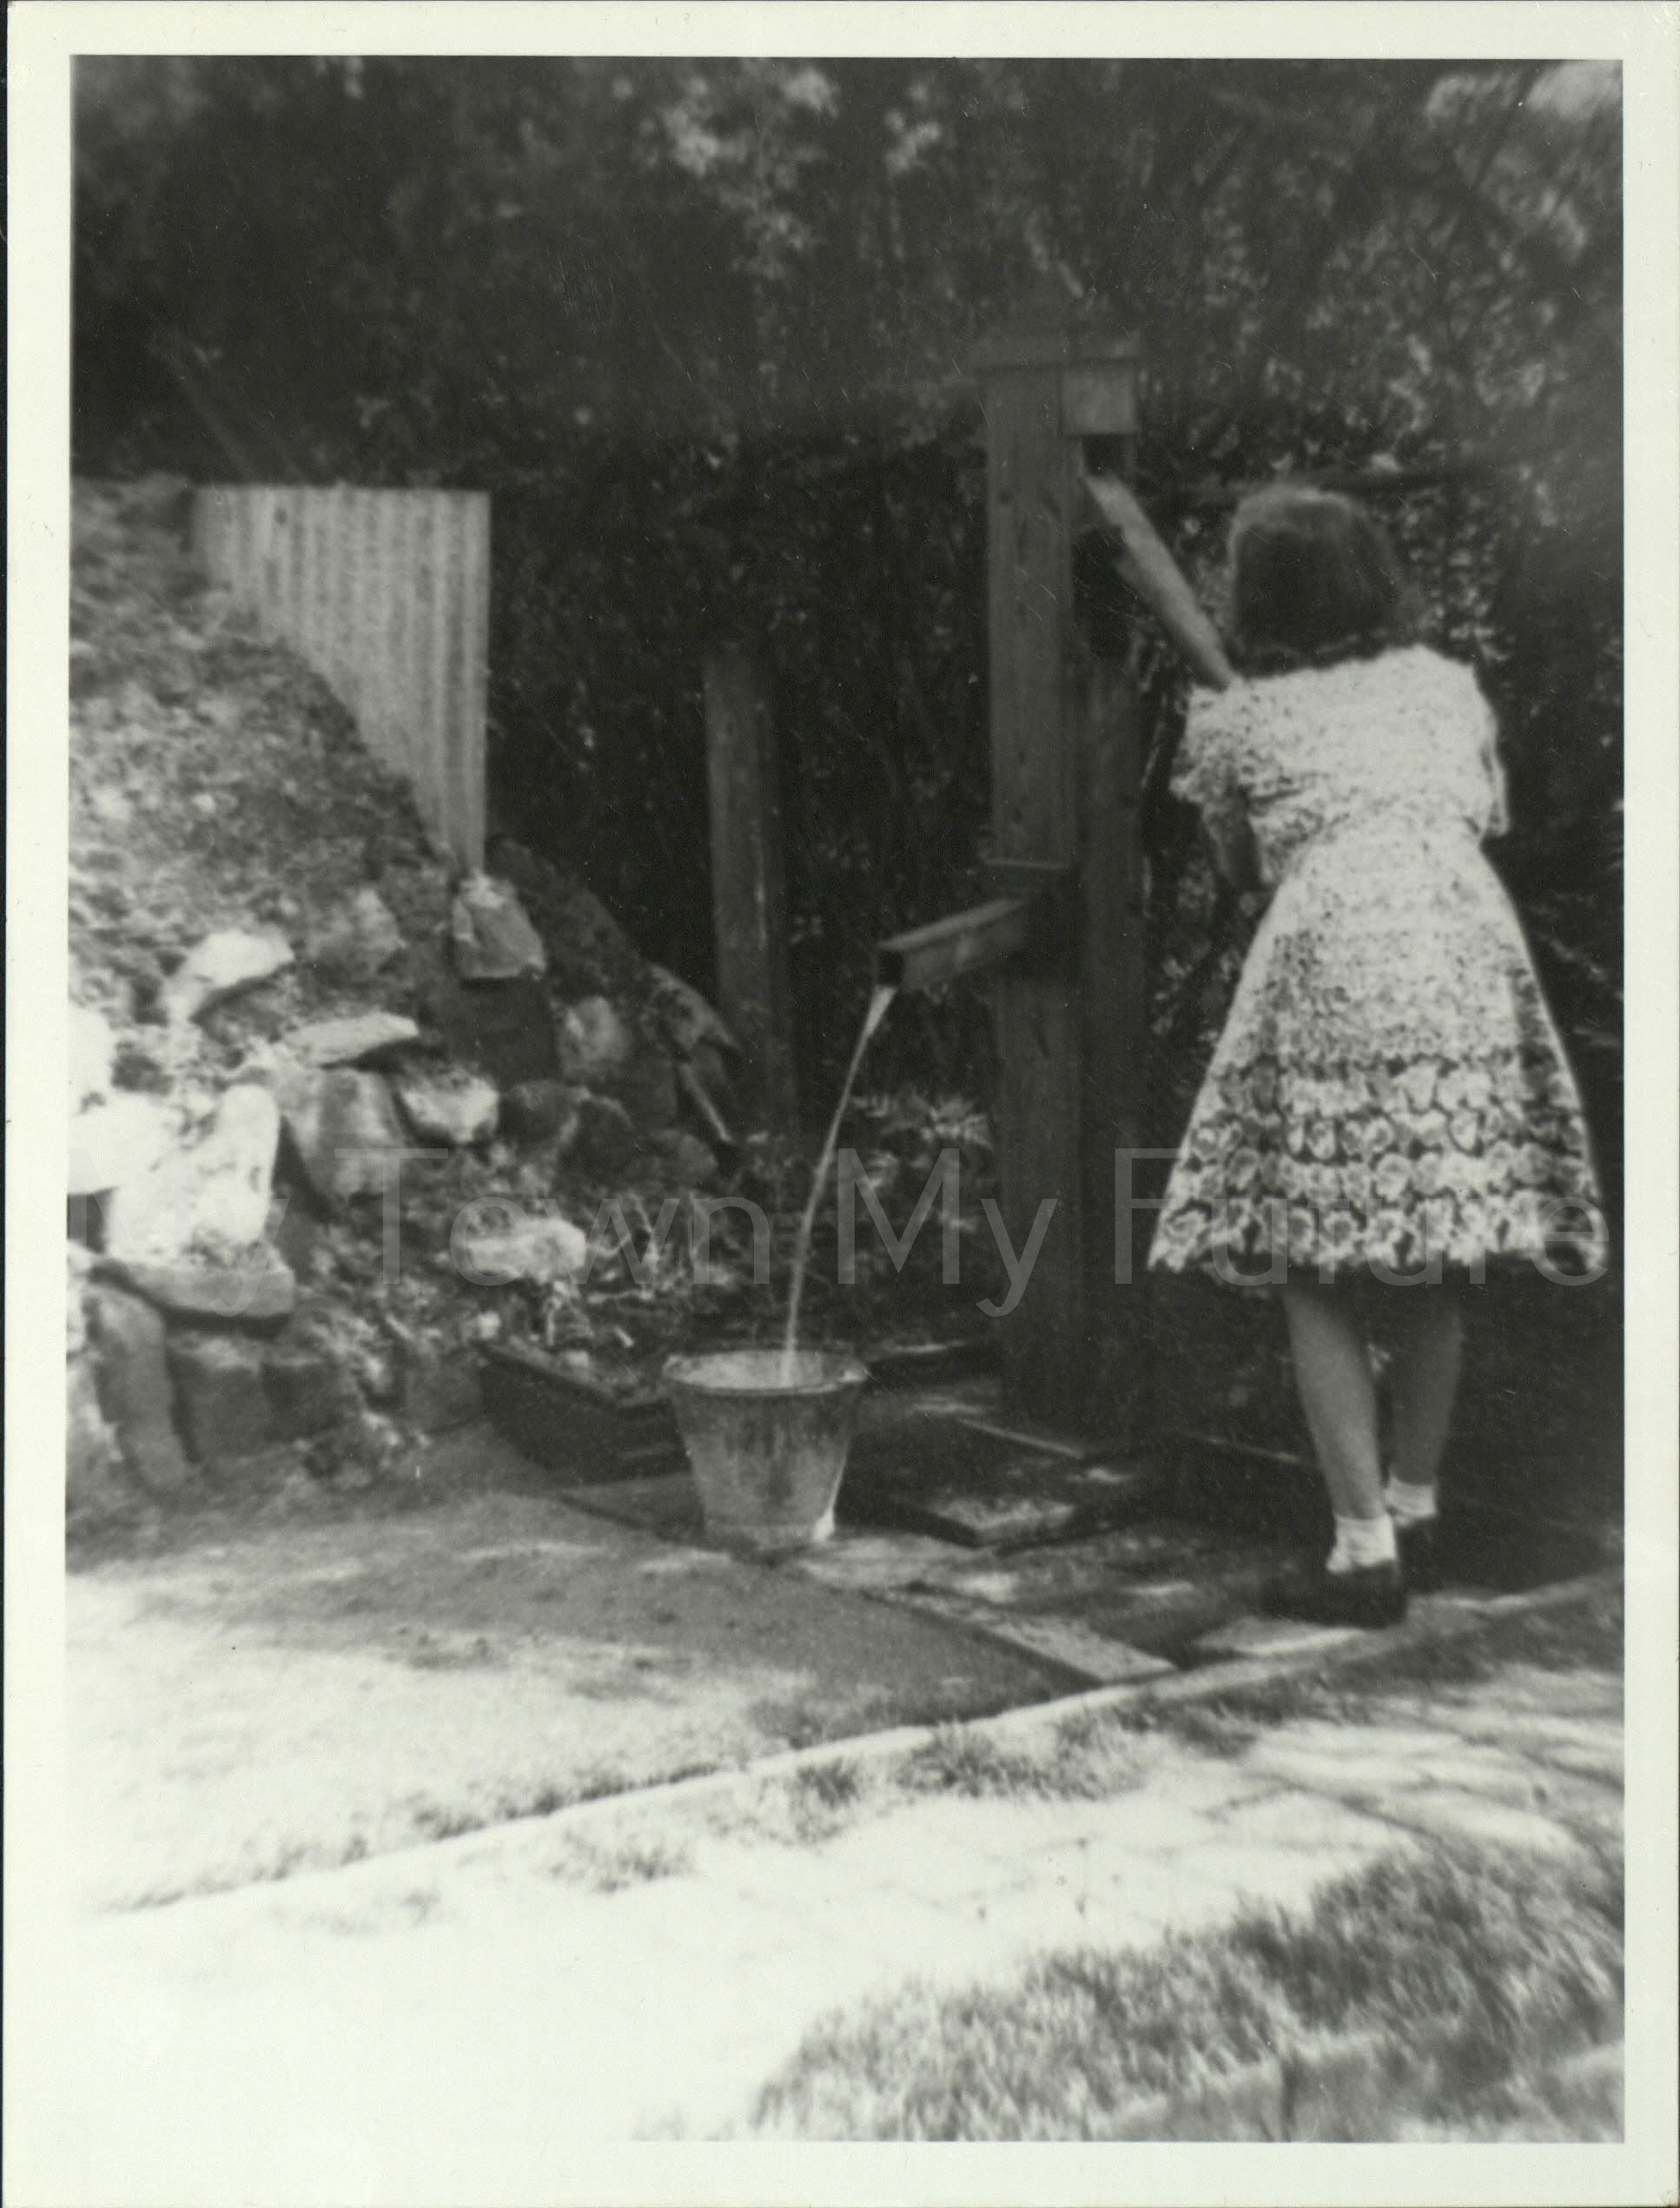 World War II Civillians Anderson Shelter at 11 Eastbourne Road 1939 Girl using a Standpipe to draw water